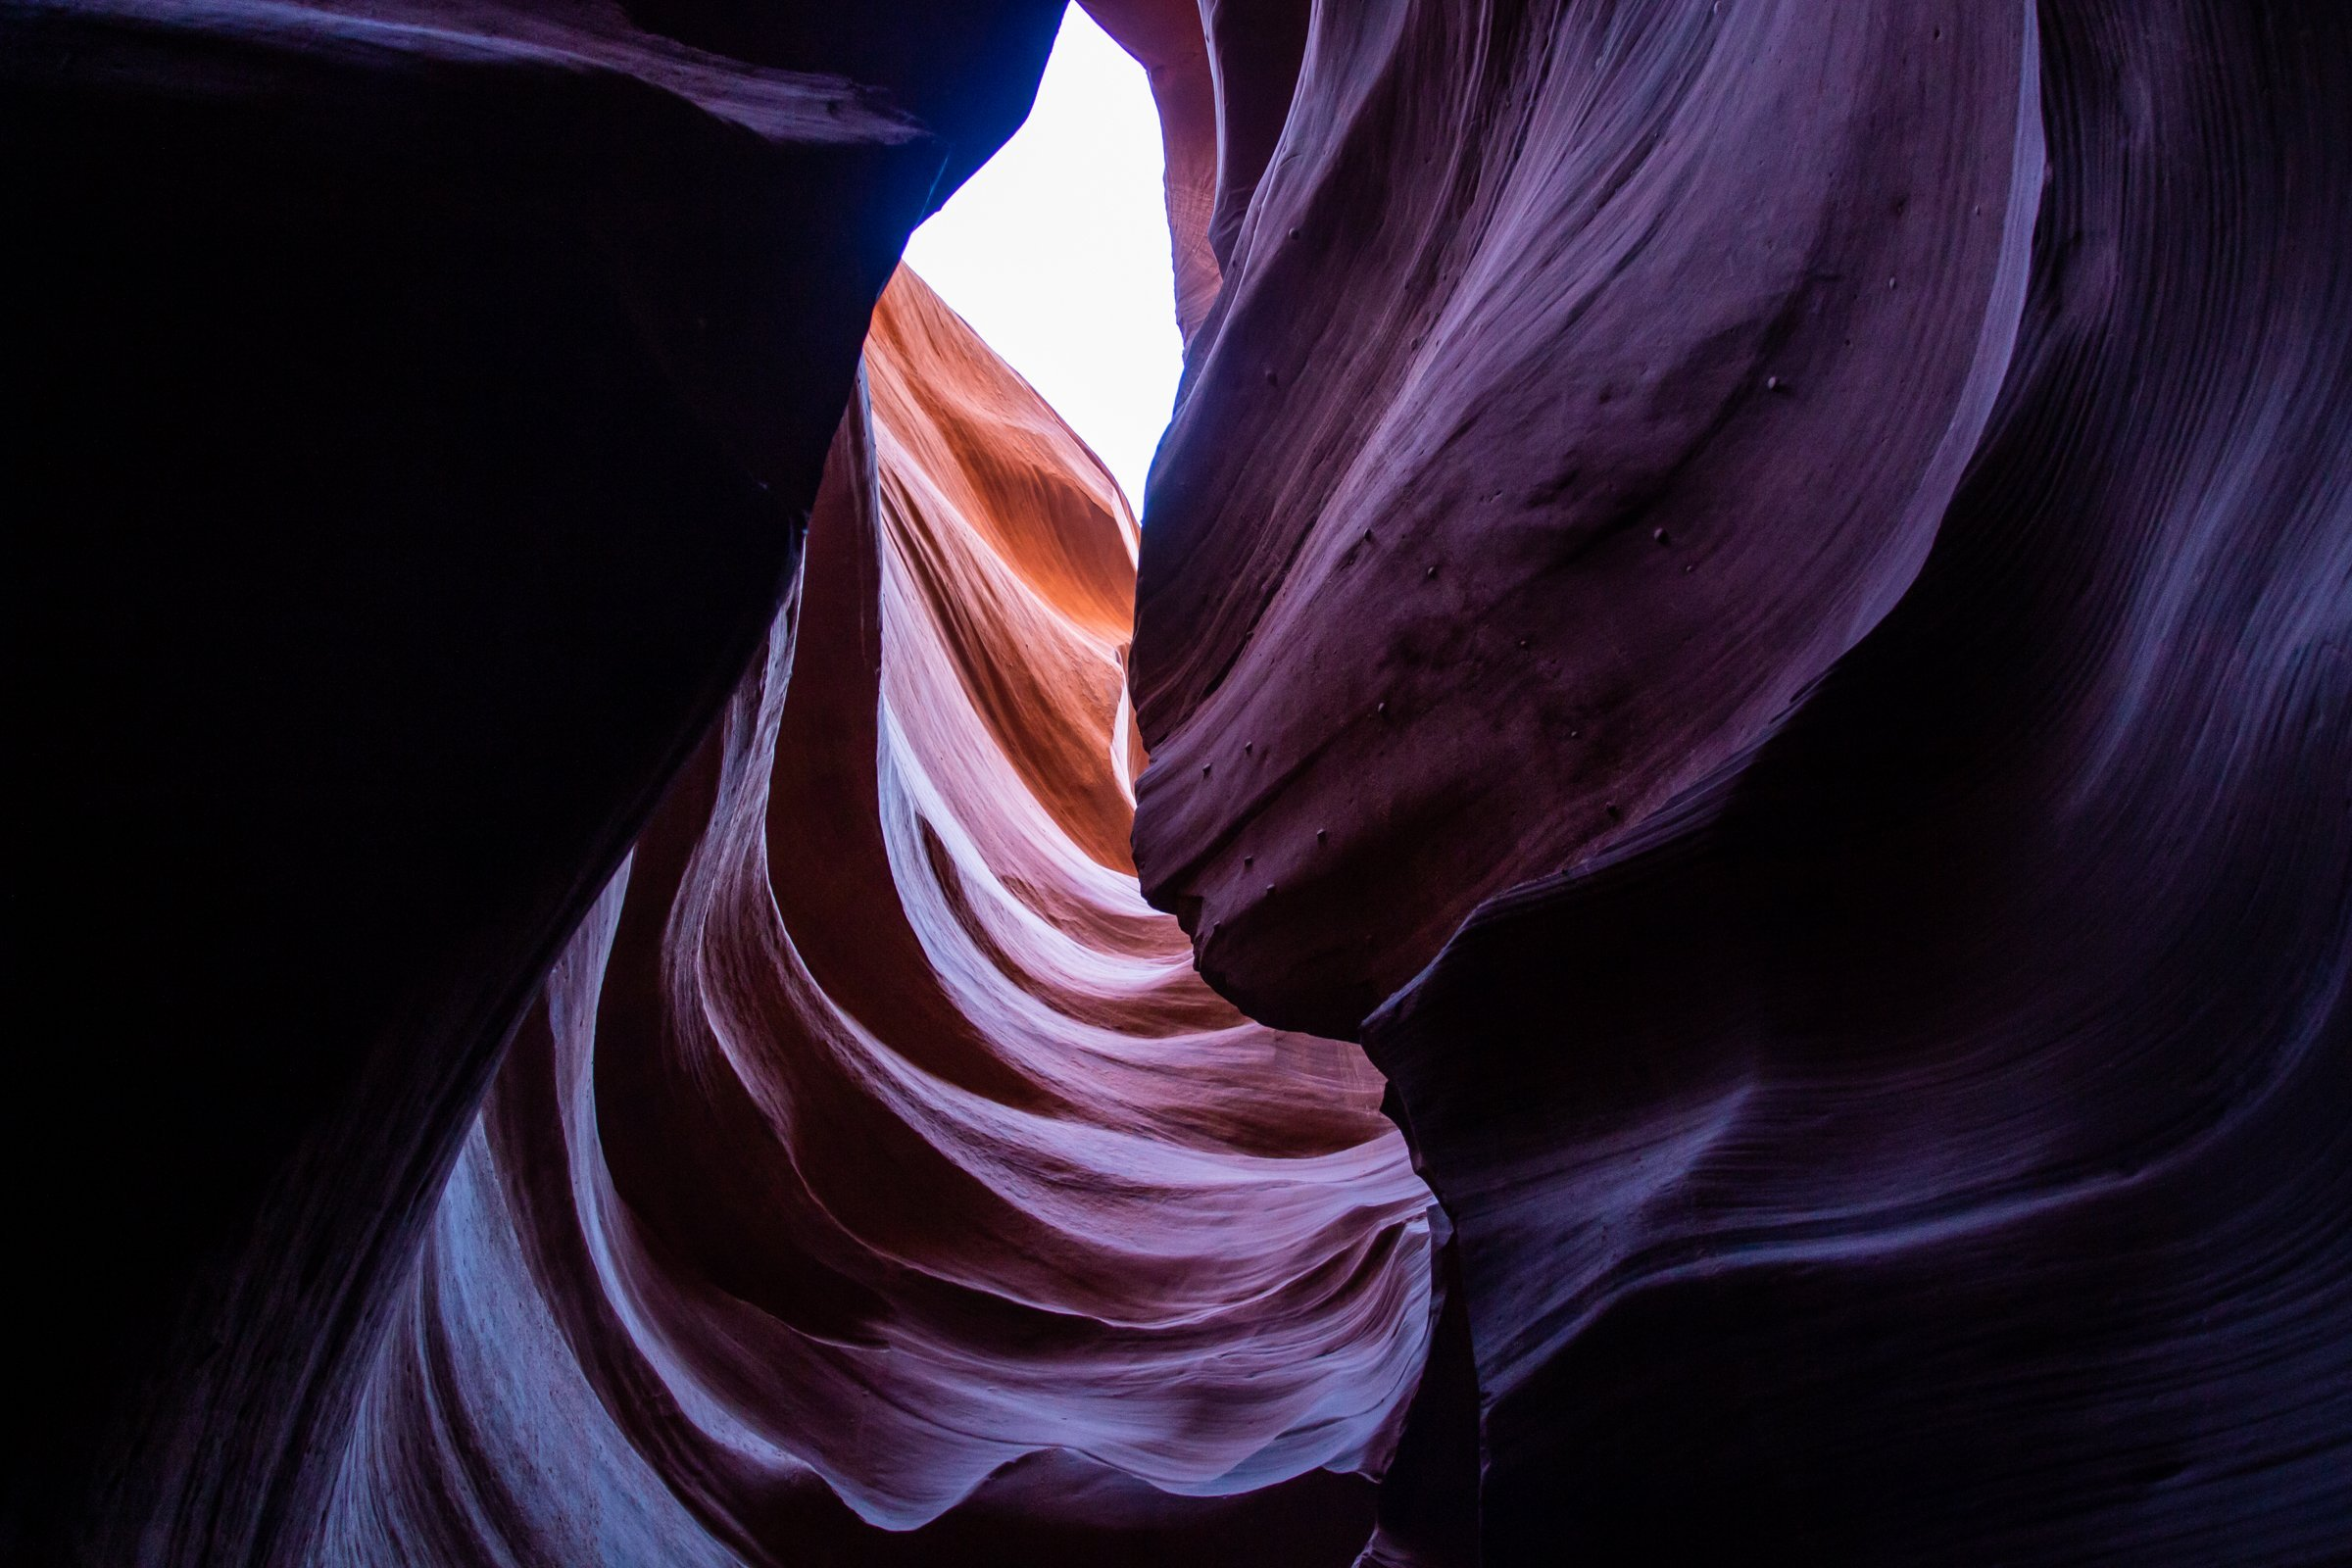 Textured Folds Of Antelope Canyon Corridors